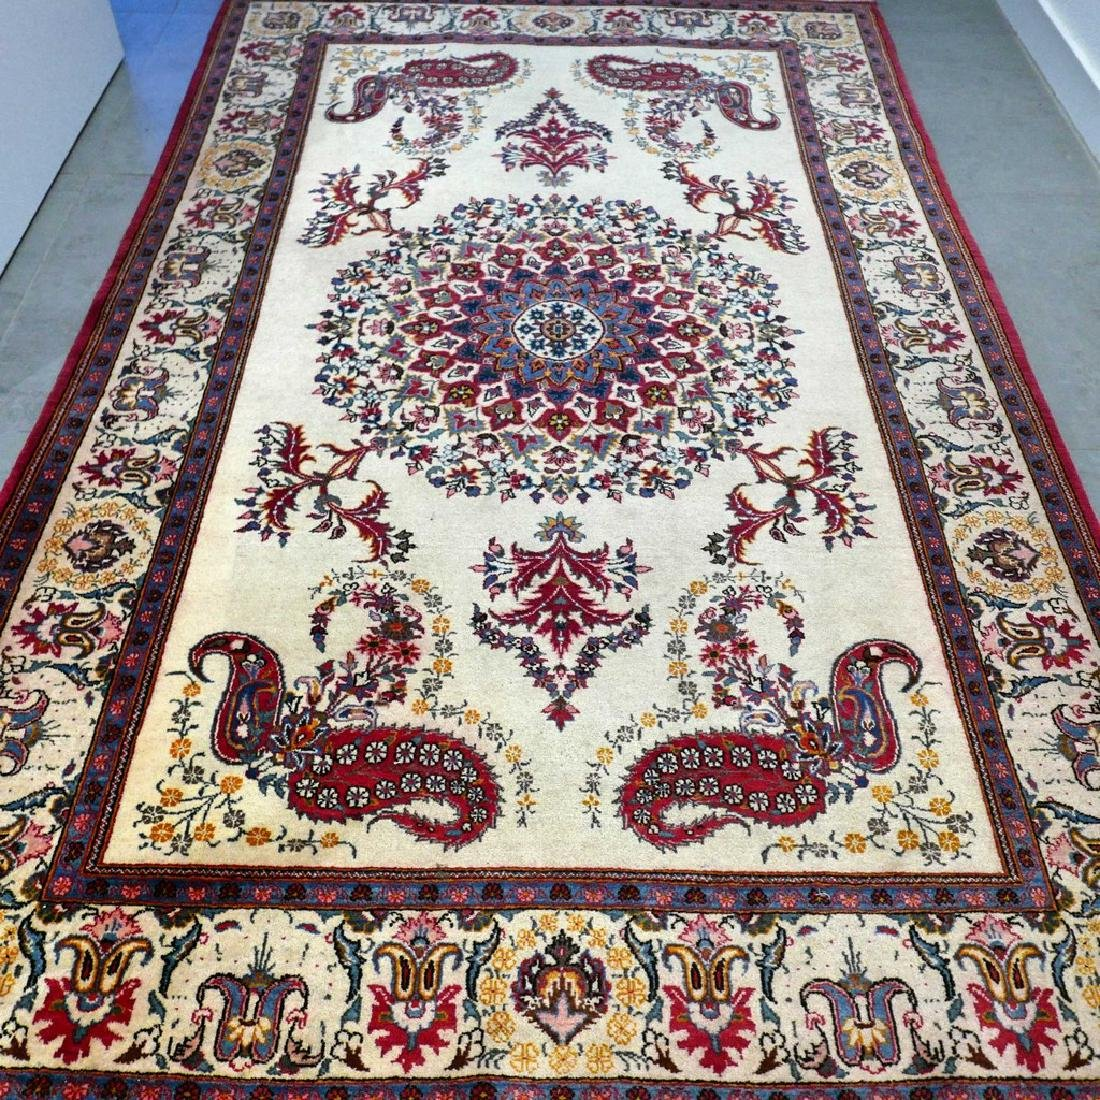 Keshan With Special Design Rug 7x4.4 - 7